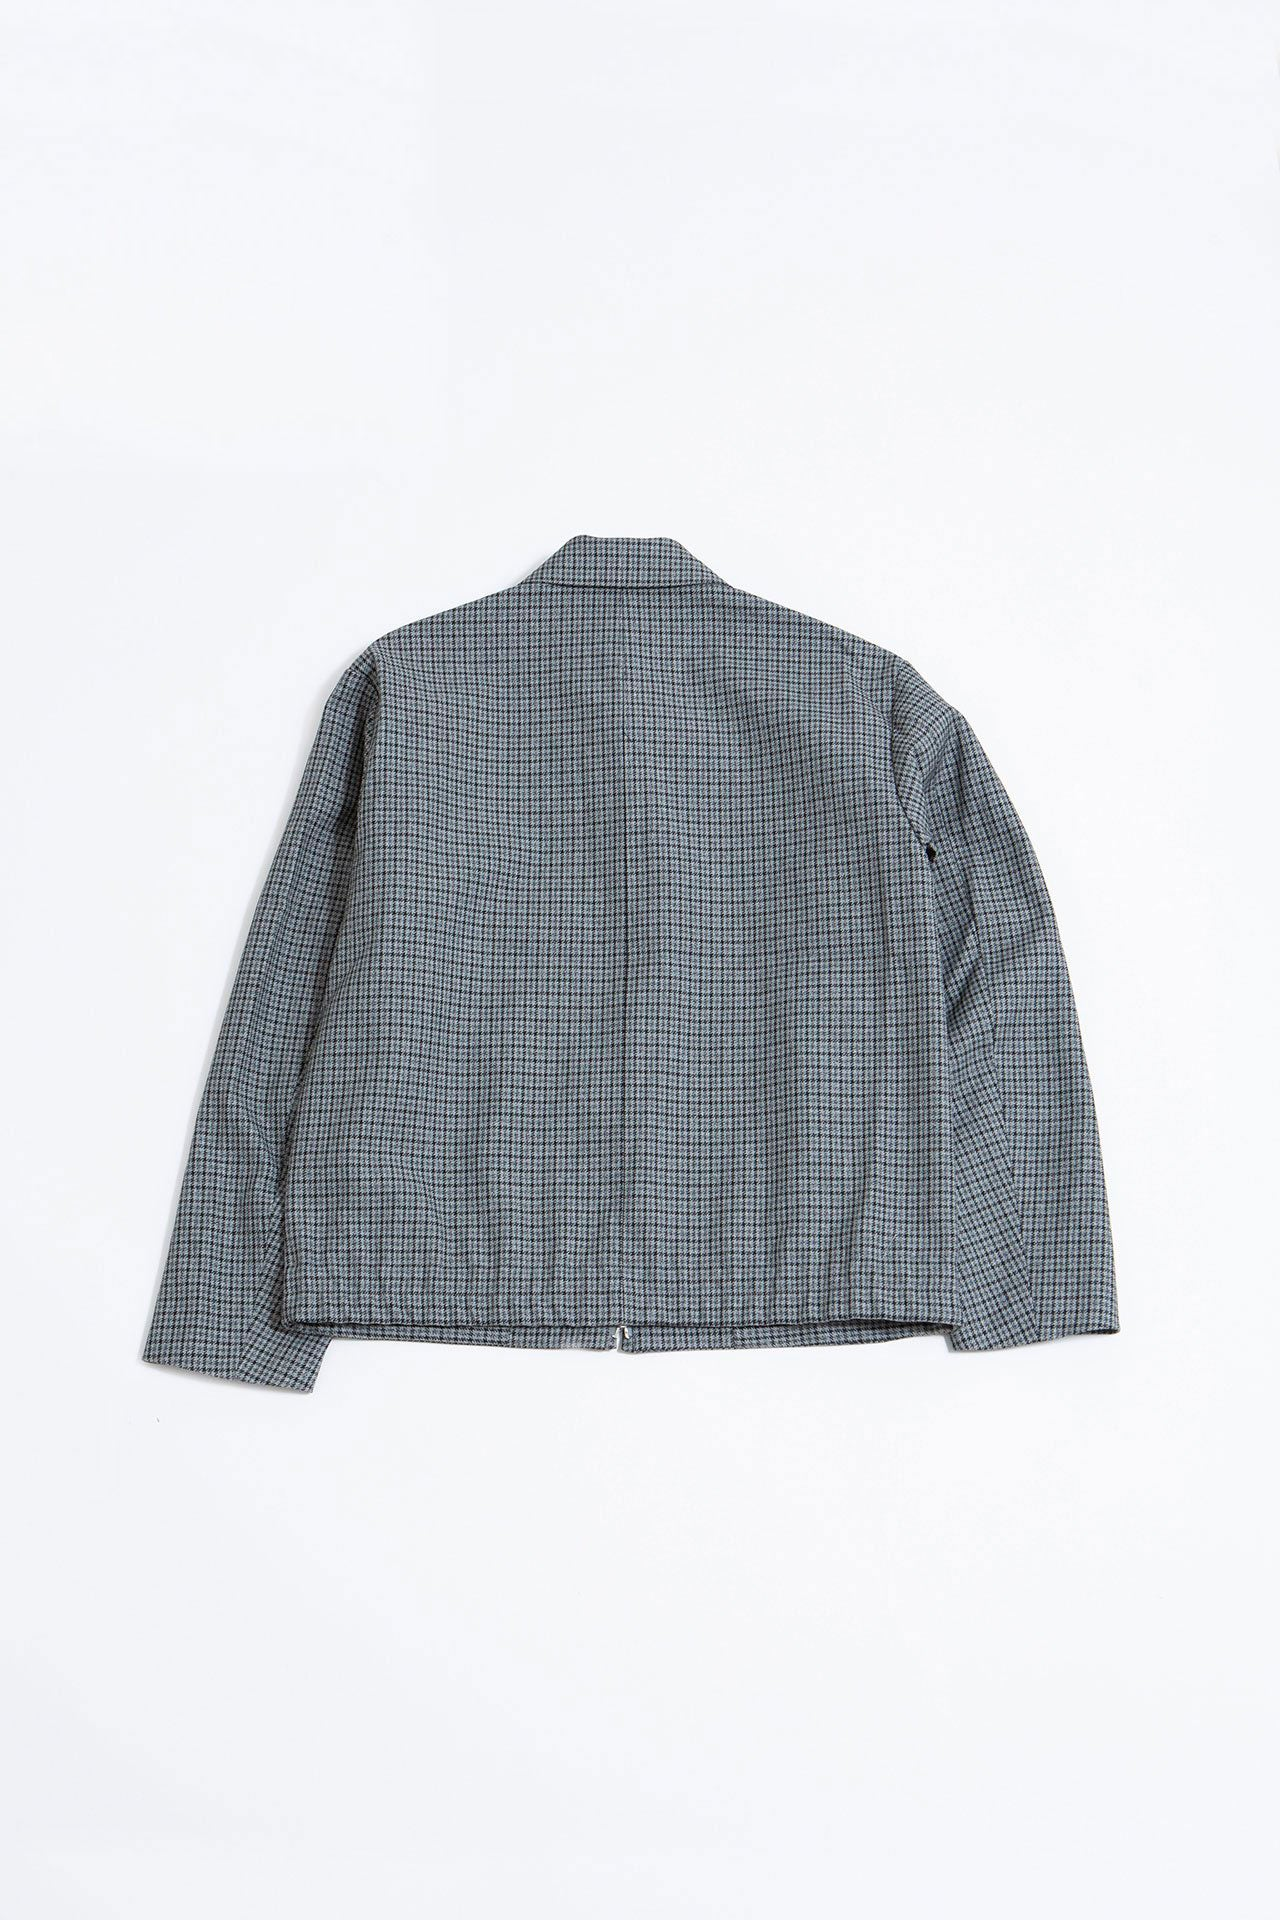 Zip-up blouson grey check